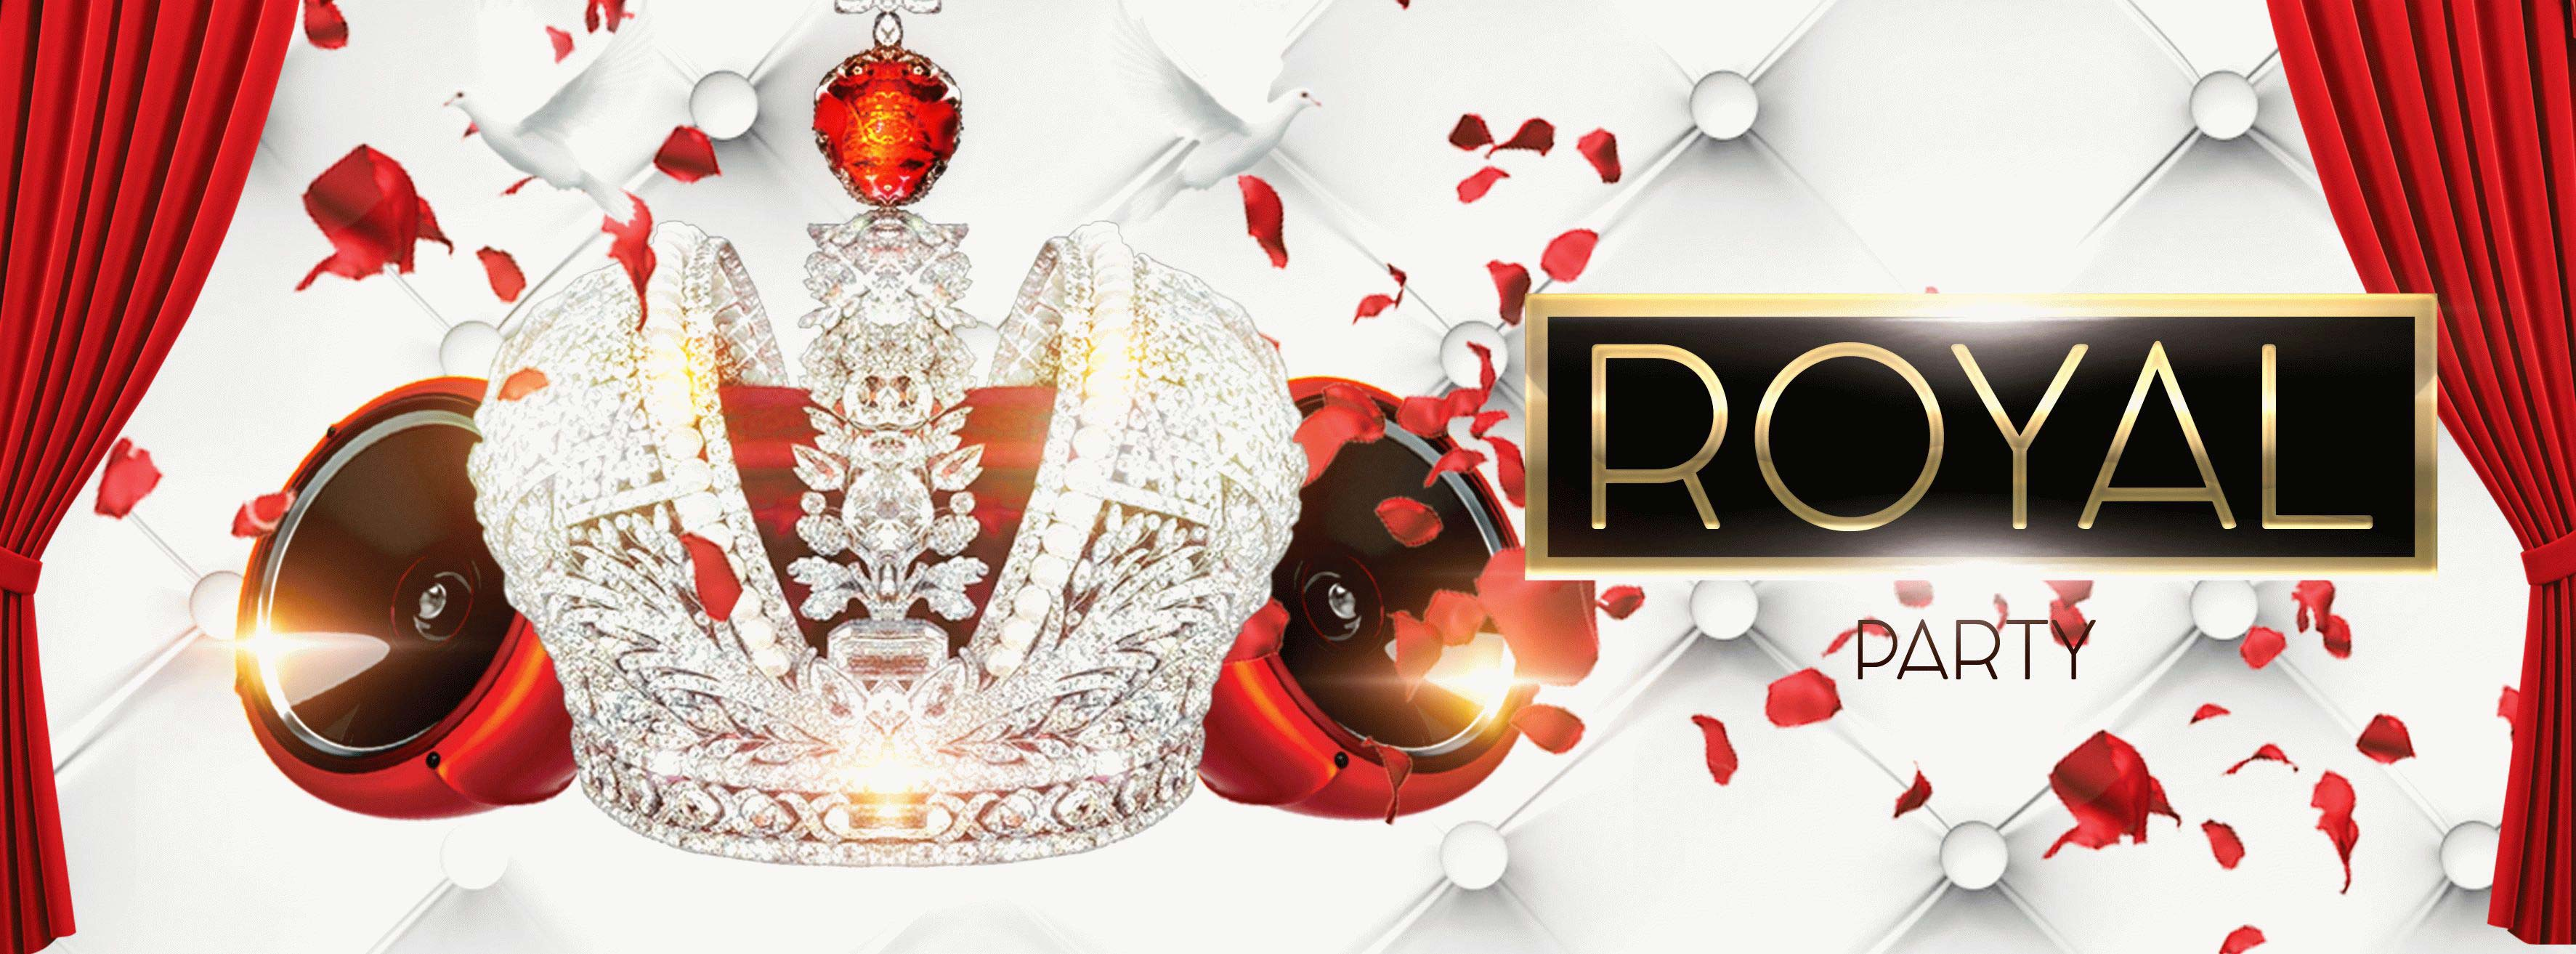 Royal party PSD Flyer Template